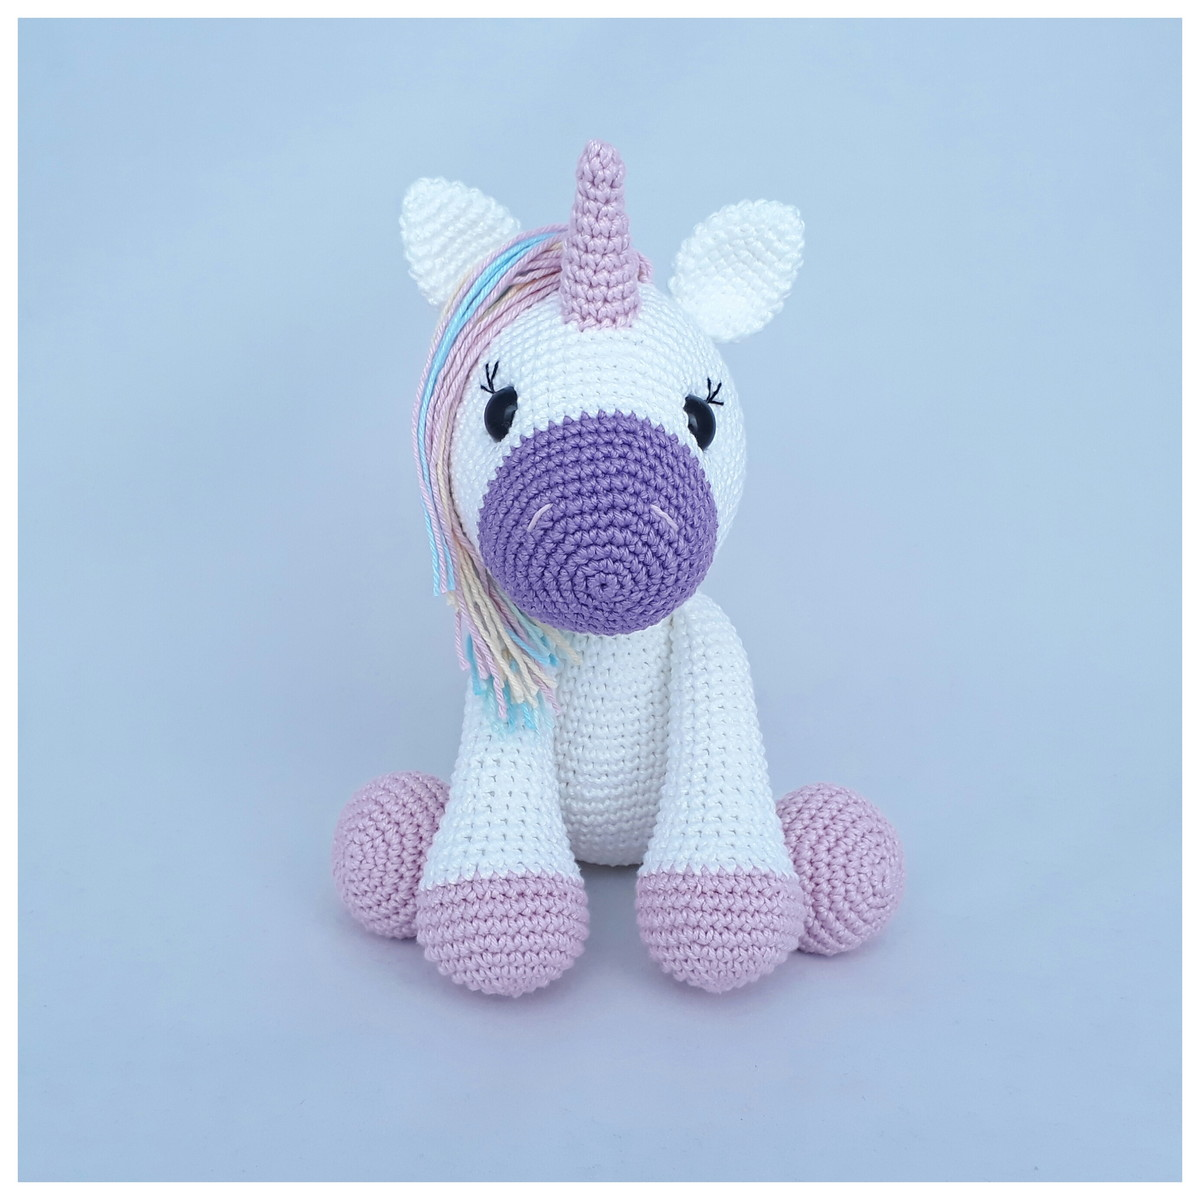 CROCHET PATTERN in English and Spanish - Mimi the Friendly Unicorn ... | 1200x1200